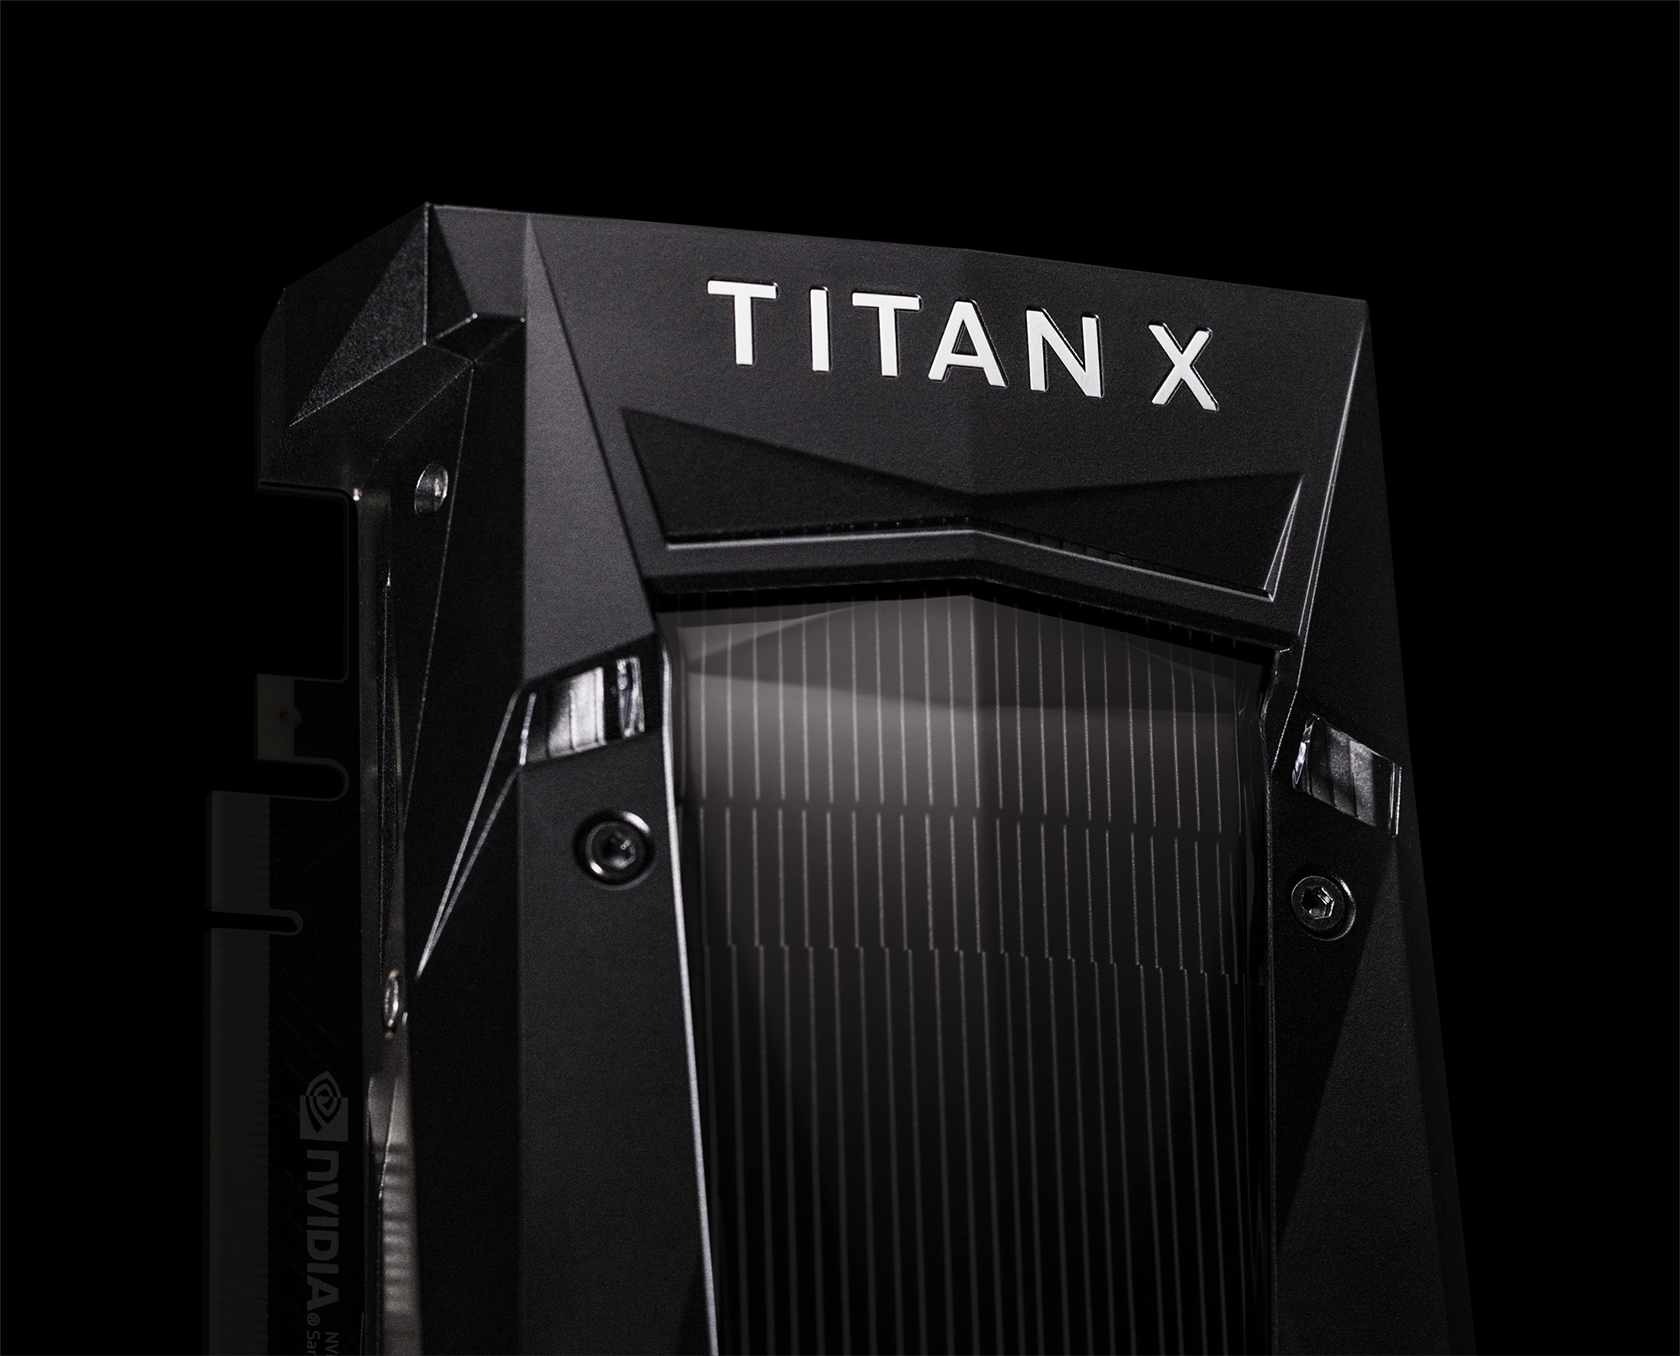 gallery-titan-xp-1-large